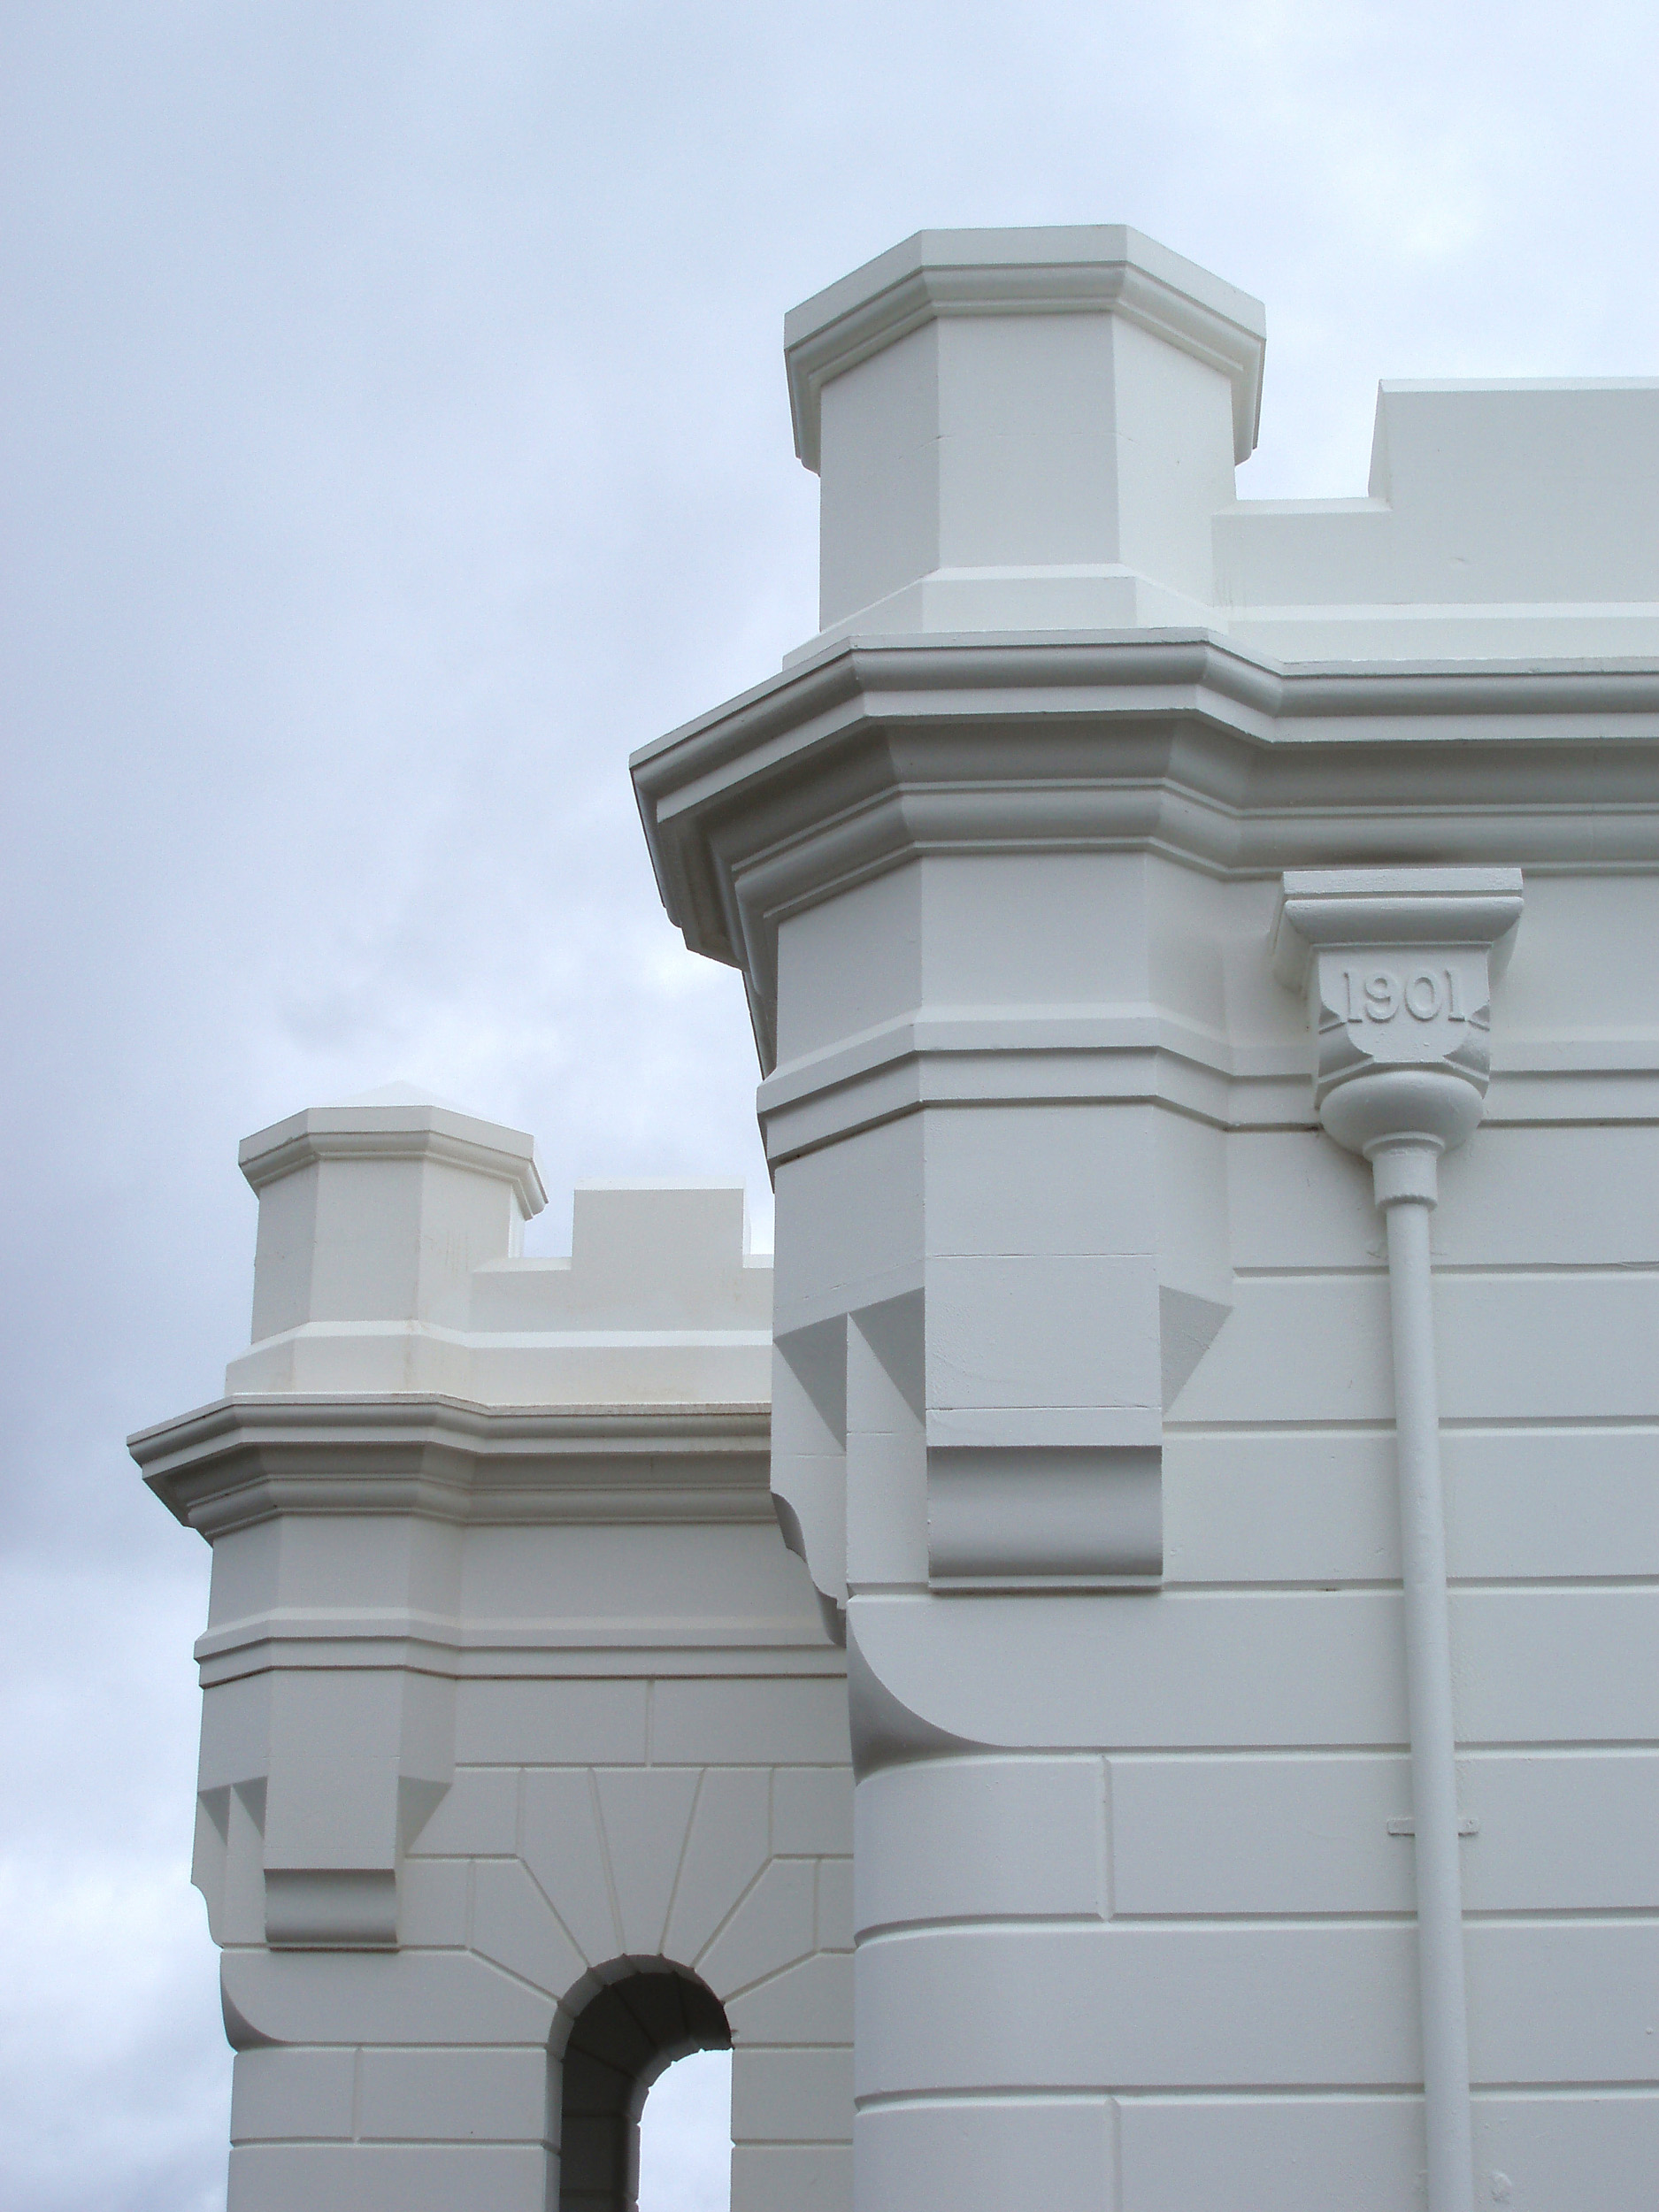 architectural details of the byron bay lighthouse